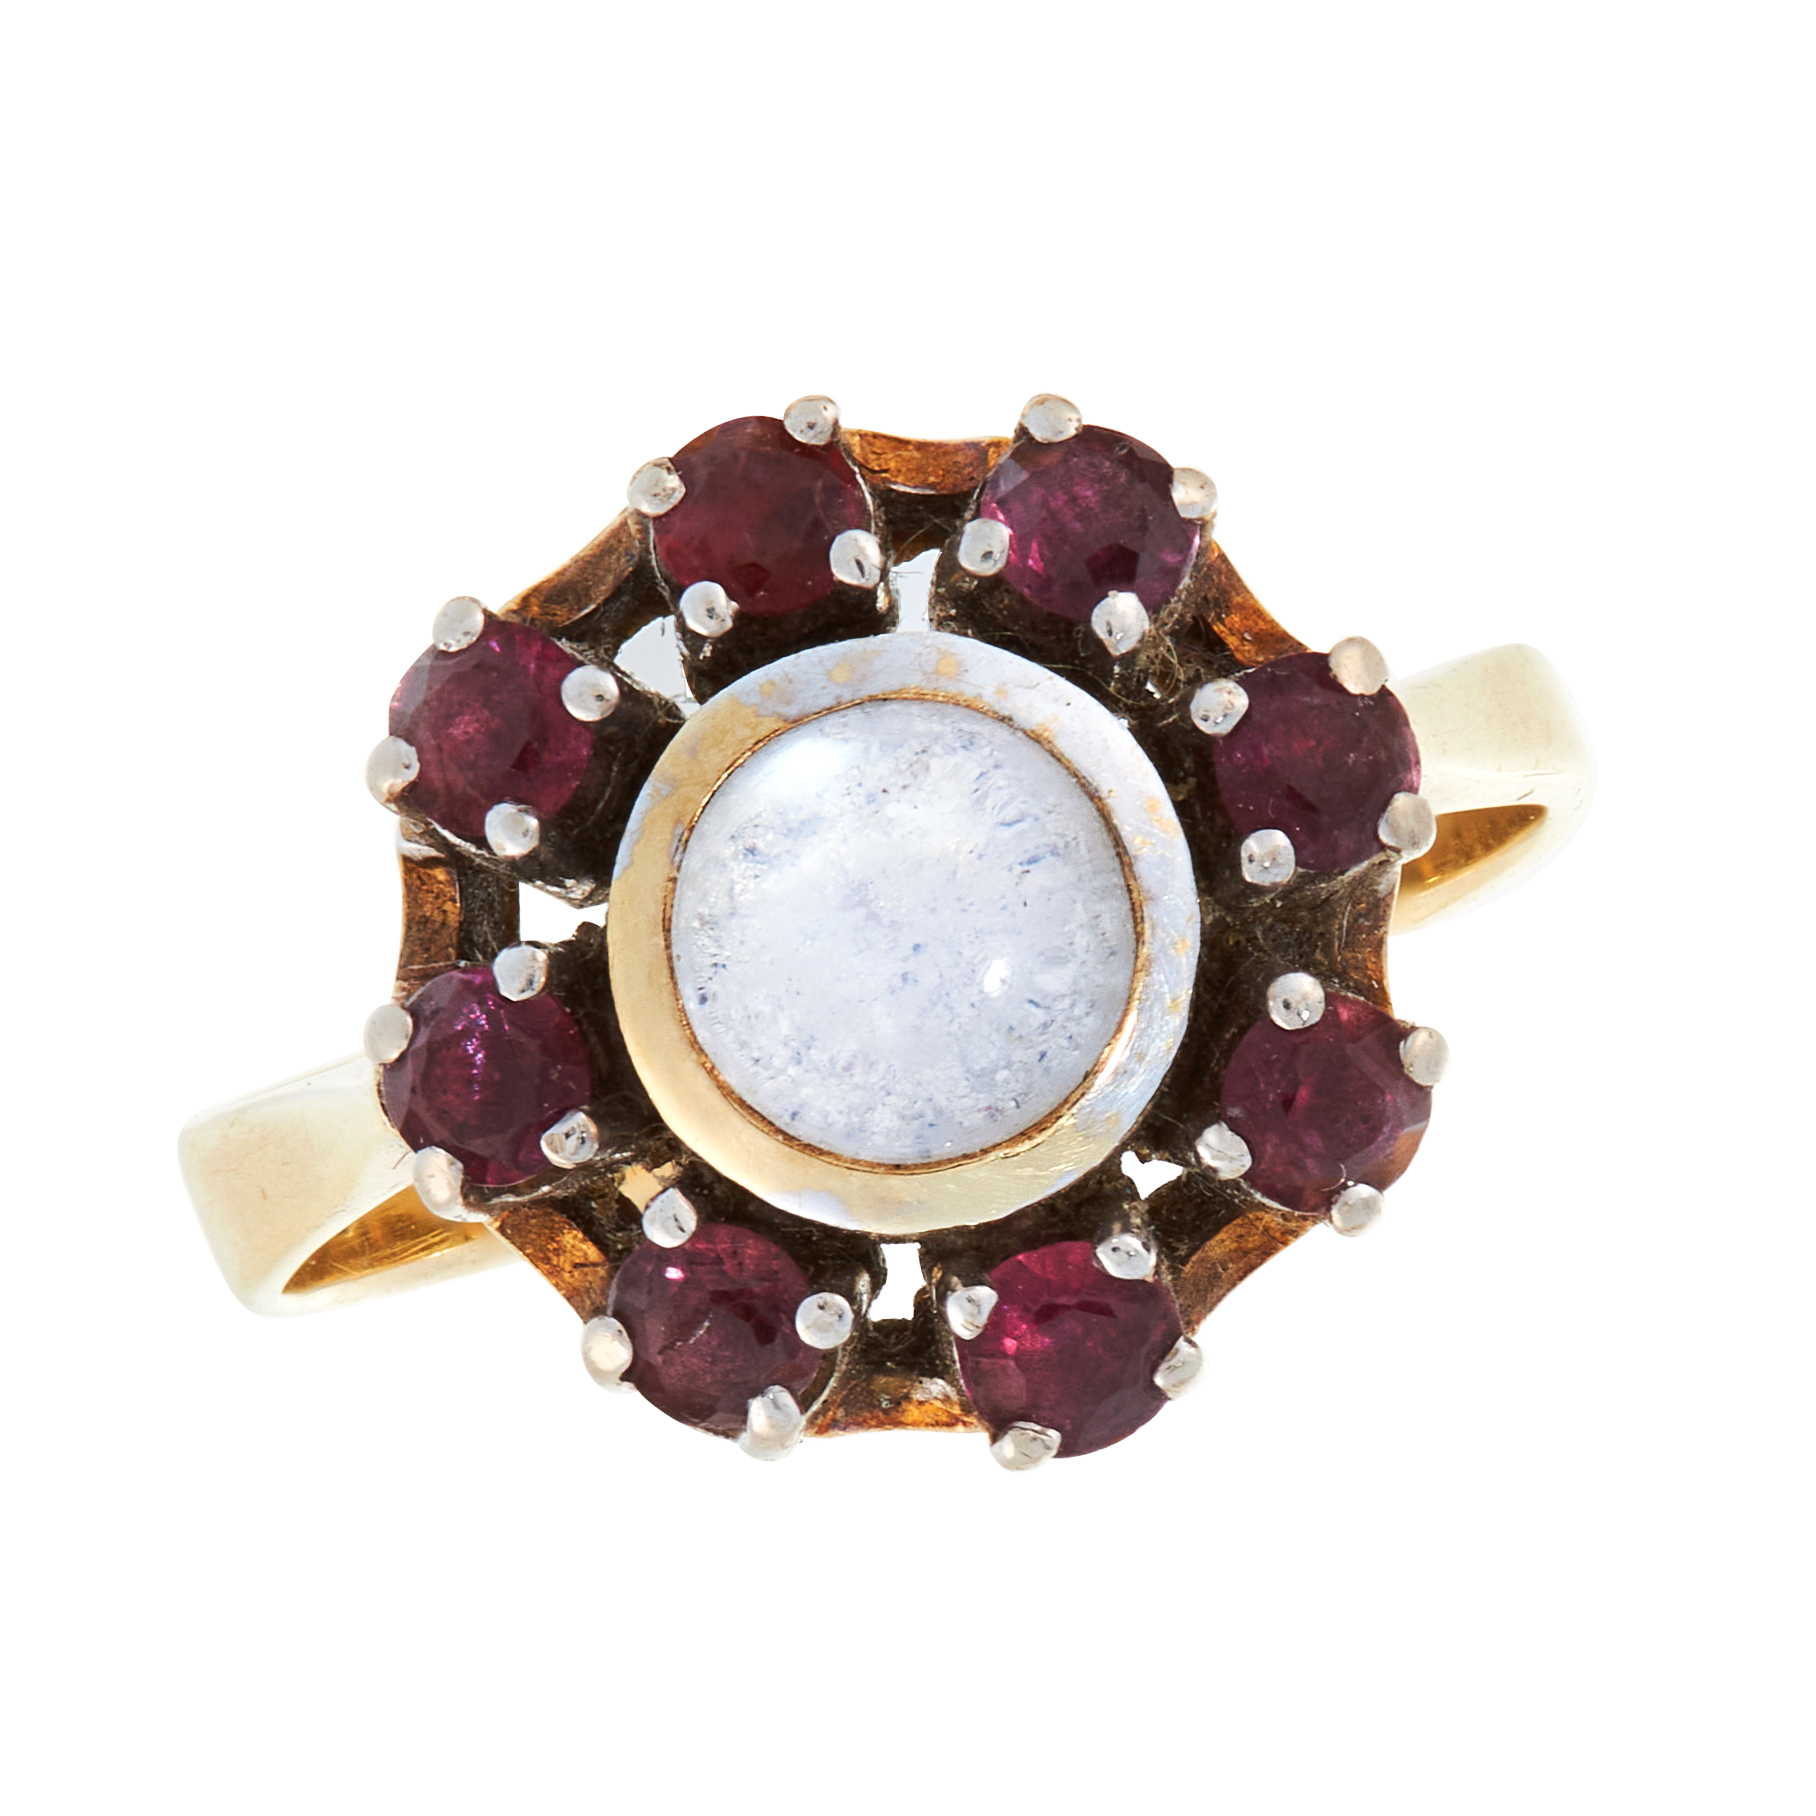 A MOONSTONE AND GARNET DRESS RING in 14ct yellow gold, set with a round cabochon moonstone within